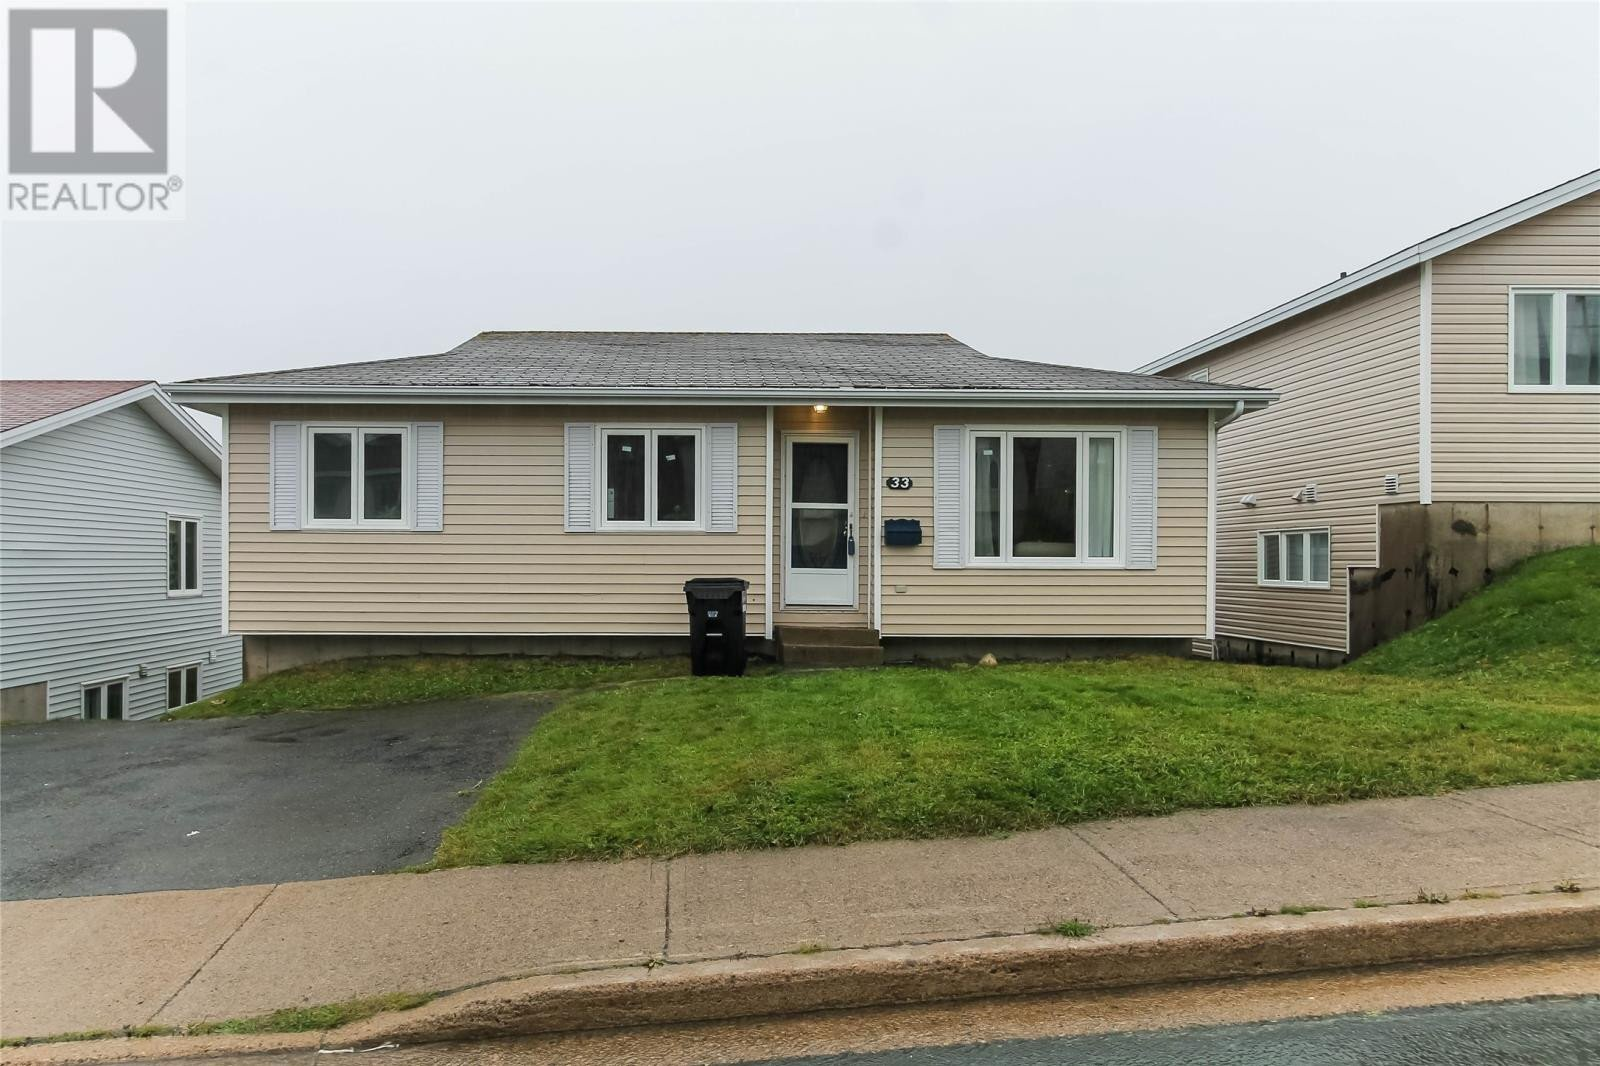 House for sale at 33 Edgecombe Dr St. John's Newfoundland - MLS: 1222864